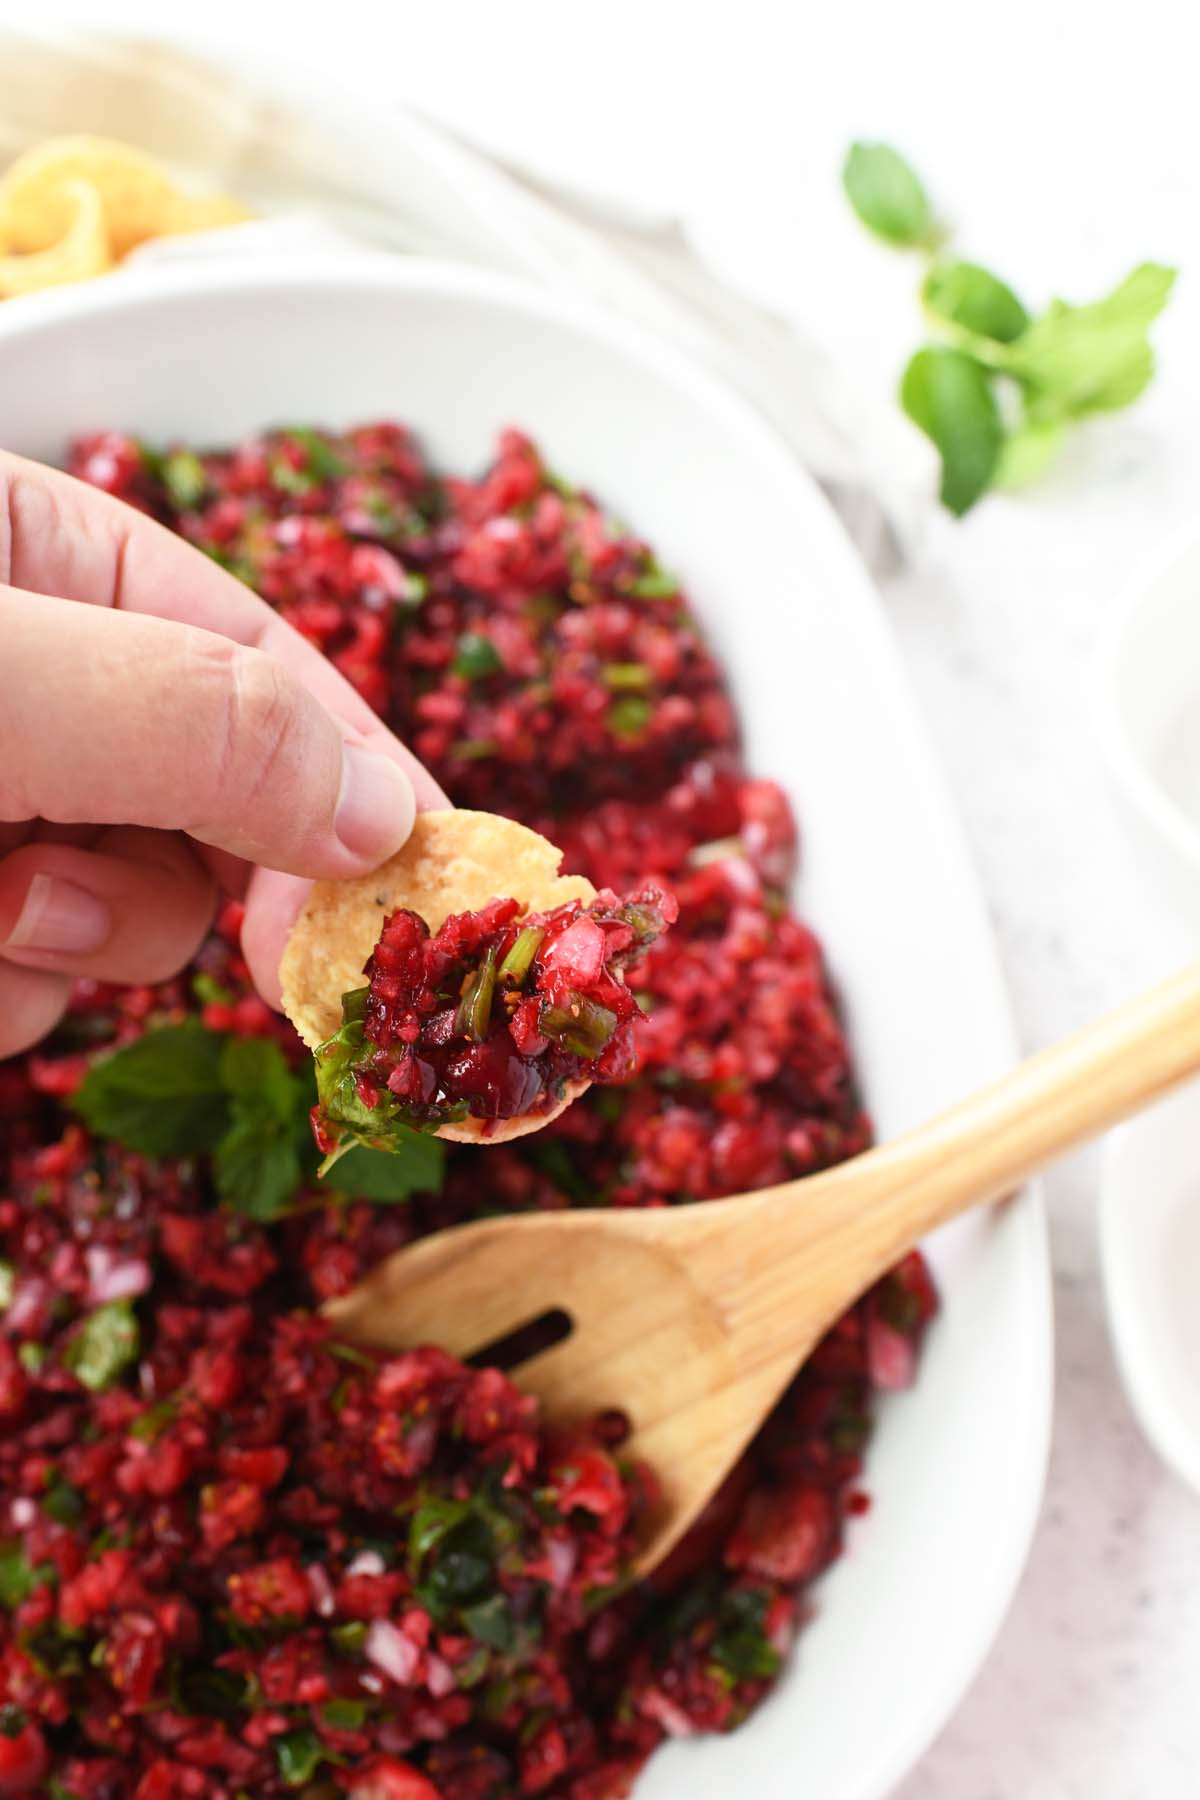 A hand dipping a chip in cranberry salsa.